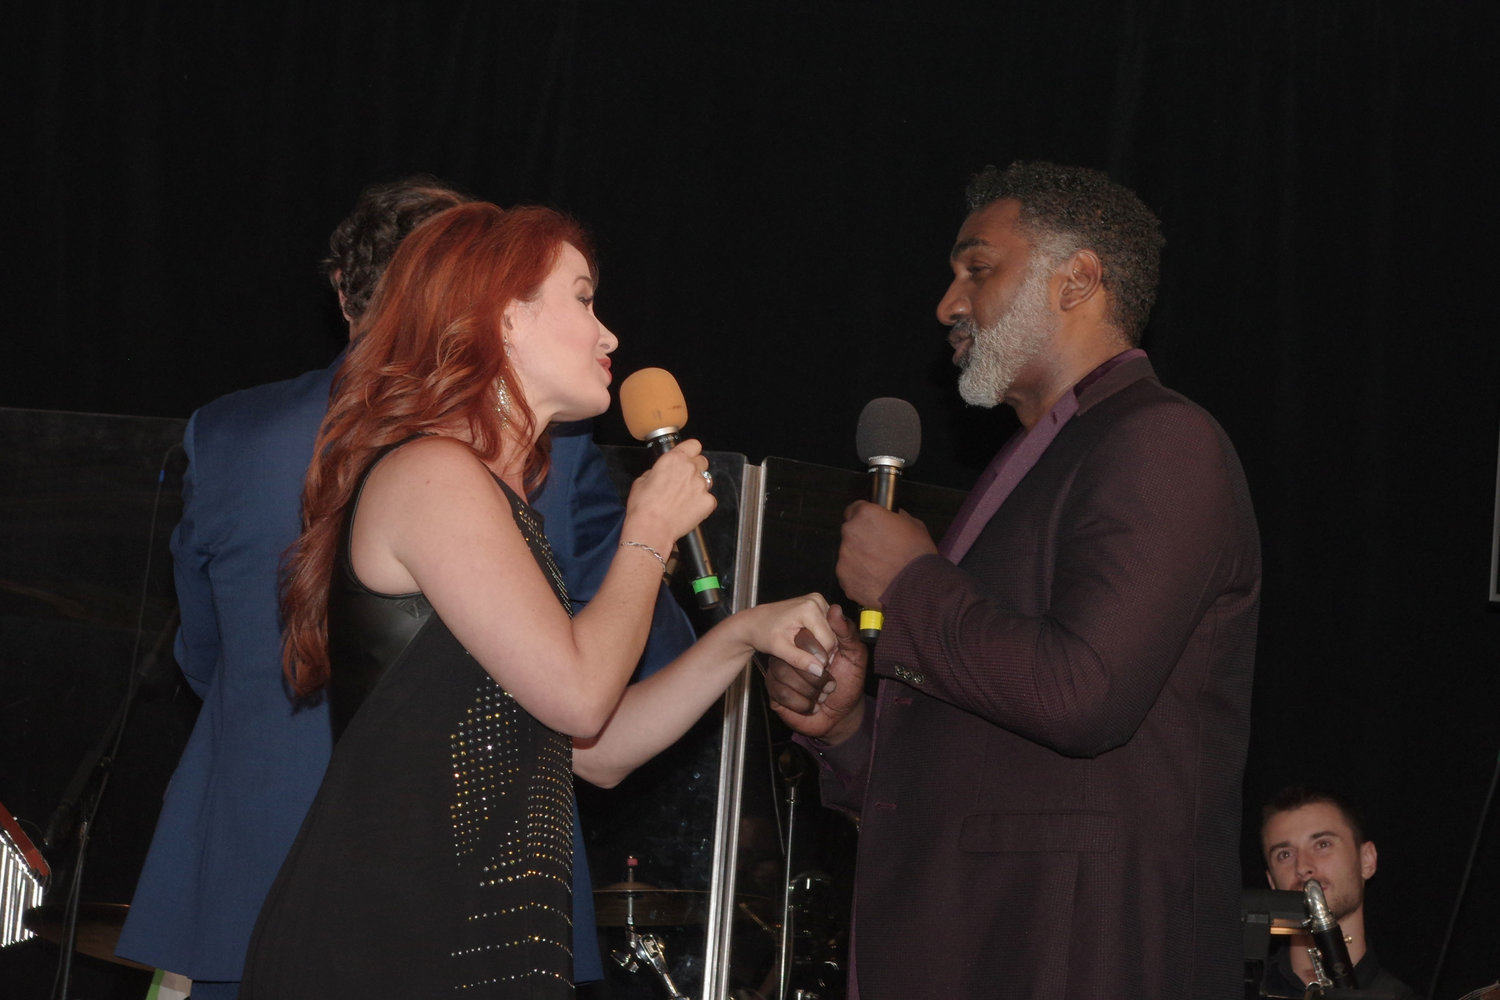 Sierra Boggess and Norm Lewis performed at the event.